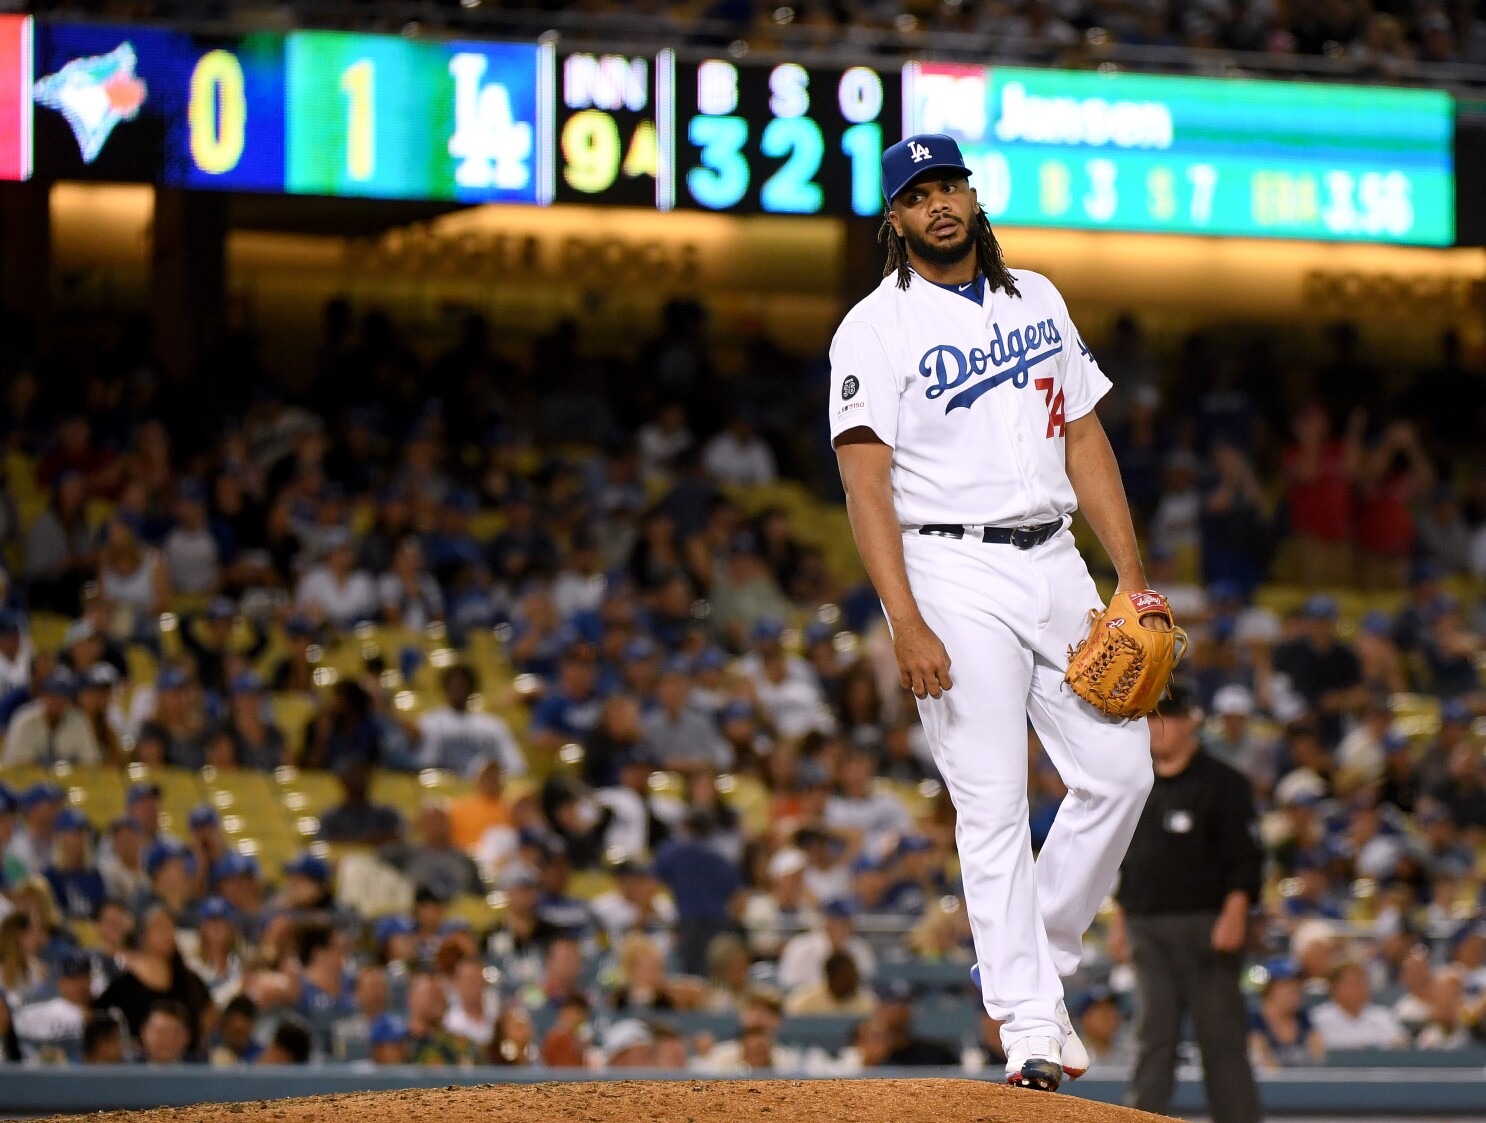 Can the Dodgers win a World Series with Kenley Jansen continuing to struggle as their closer?